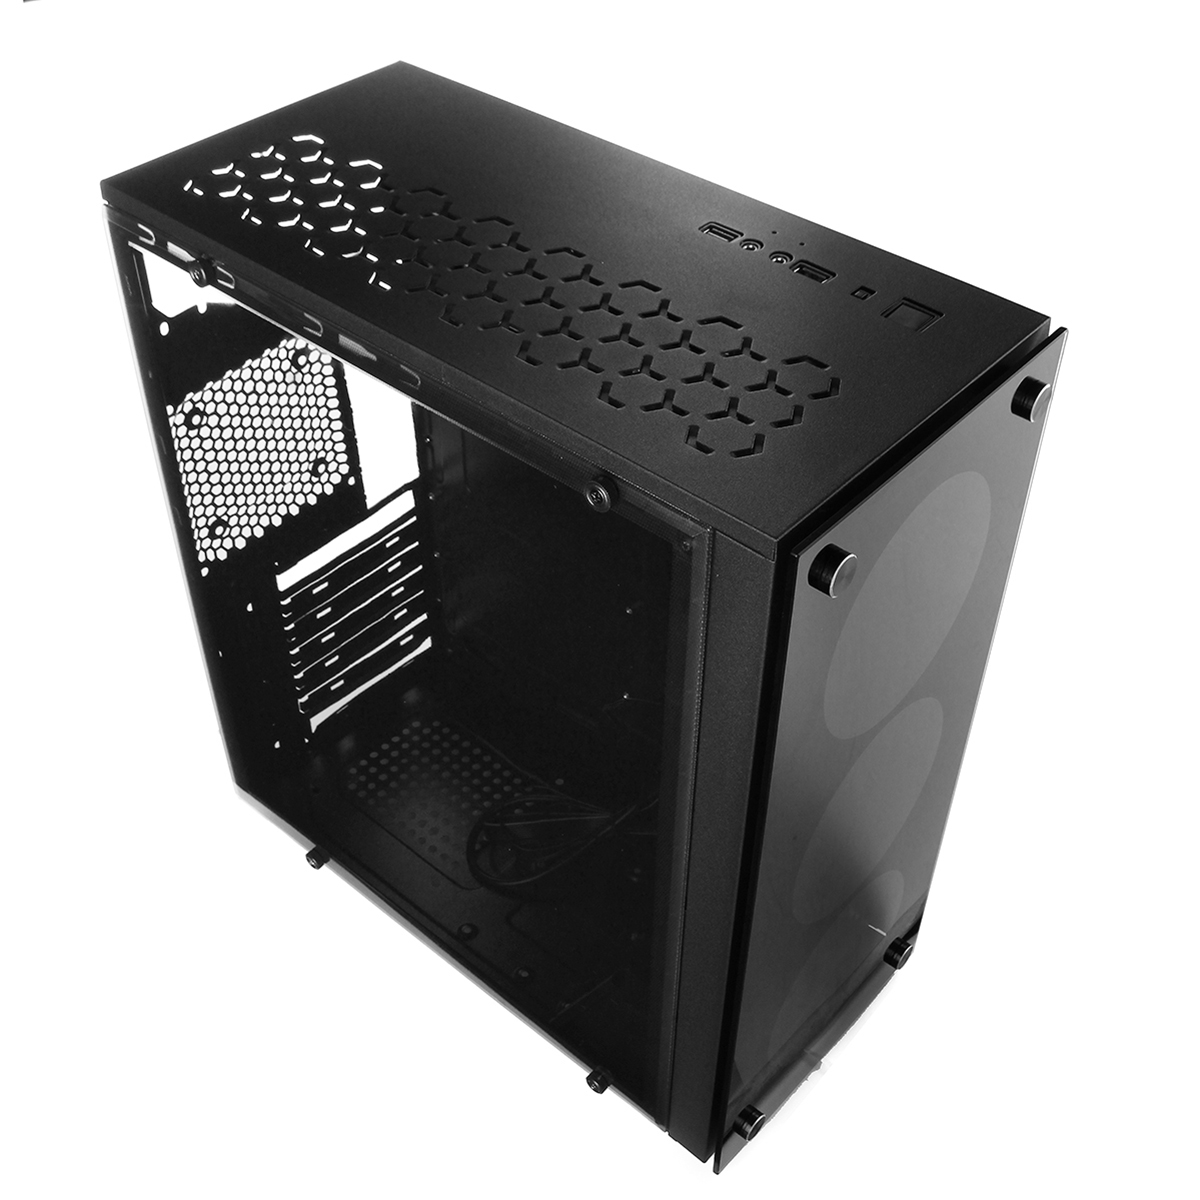 S SKYEE ATX Mid Tower Computer Gaming PC Case Black 4 Fan Ports Speed Control USB 3.0 415*180*390mm рюкзак case logic 17 3 prevailer black prev217blk mid